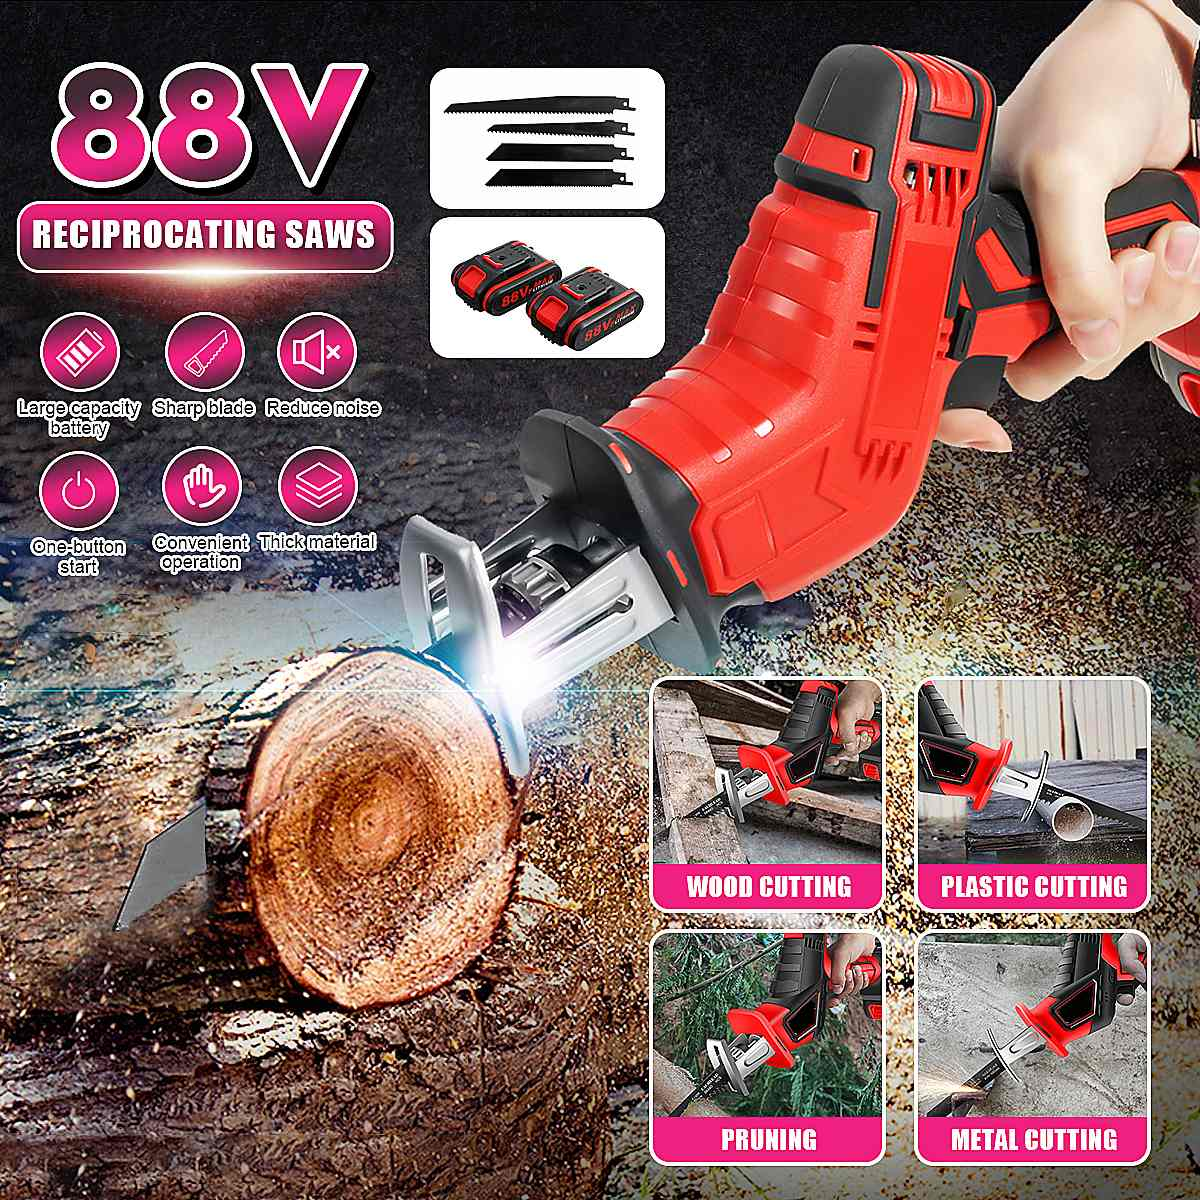 Doersupp 88V 1/2Lithium Battery Charging Reciprocating Saw PVC Pipes Wood Metal Cutter +4 Saw blades Metal Woodworking Cutters